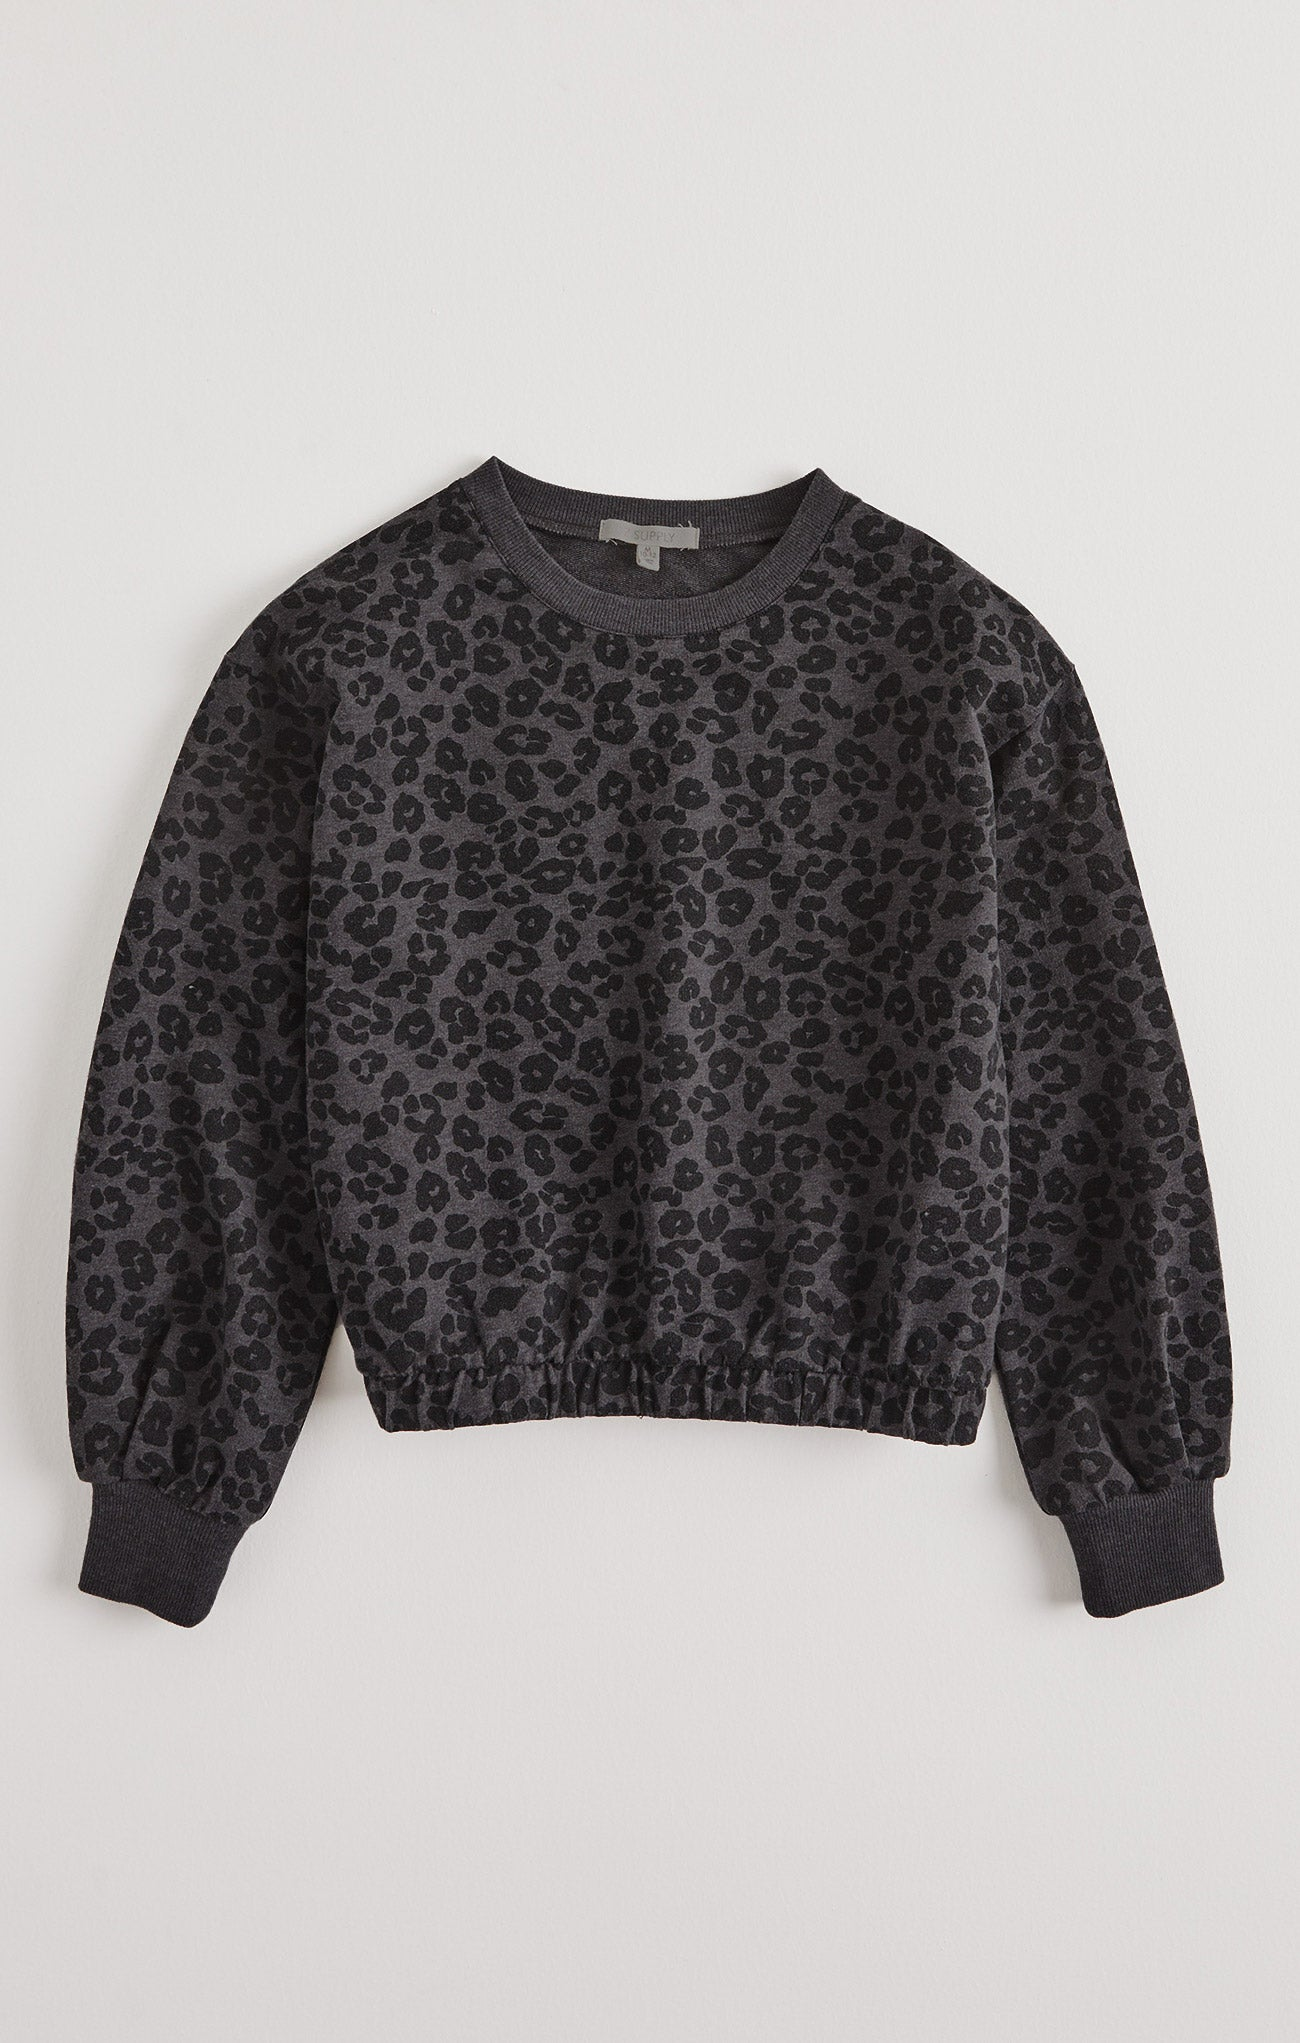 Tops Girls Carmen Leopard Sweatshirt Black